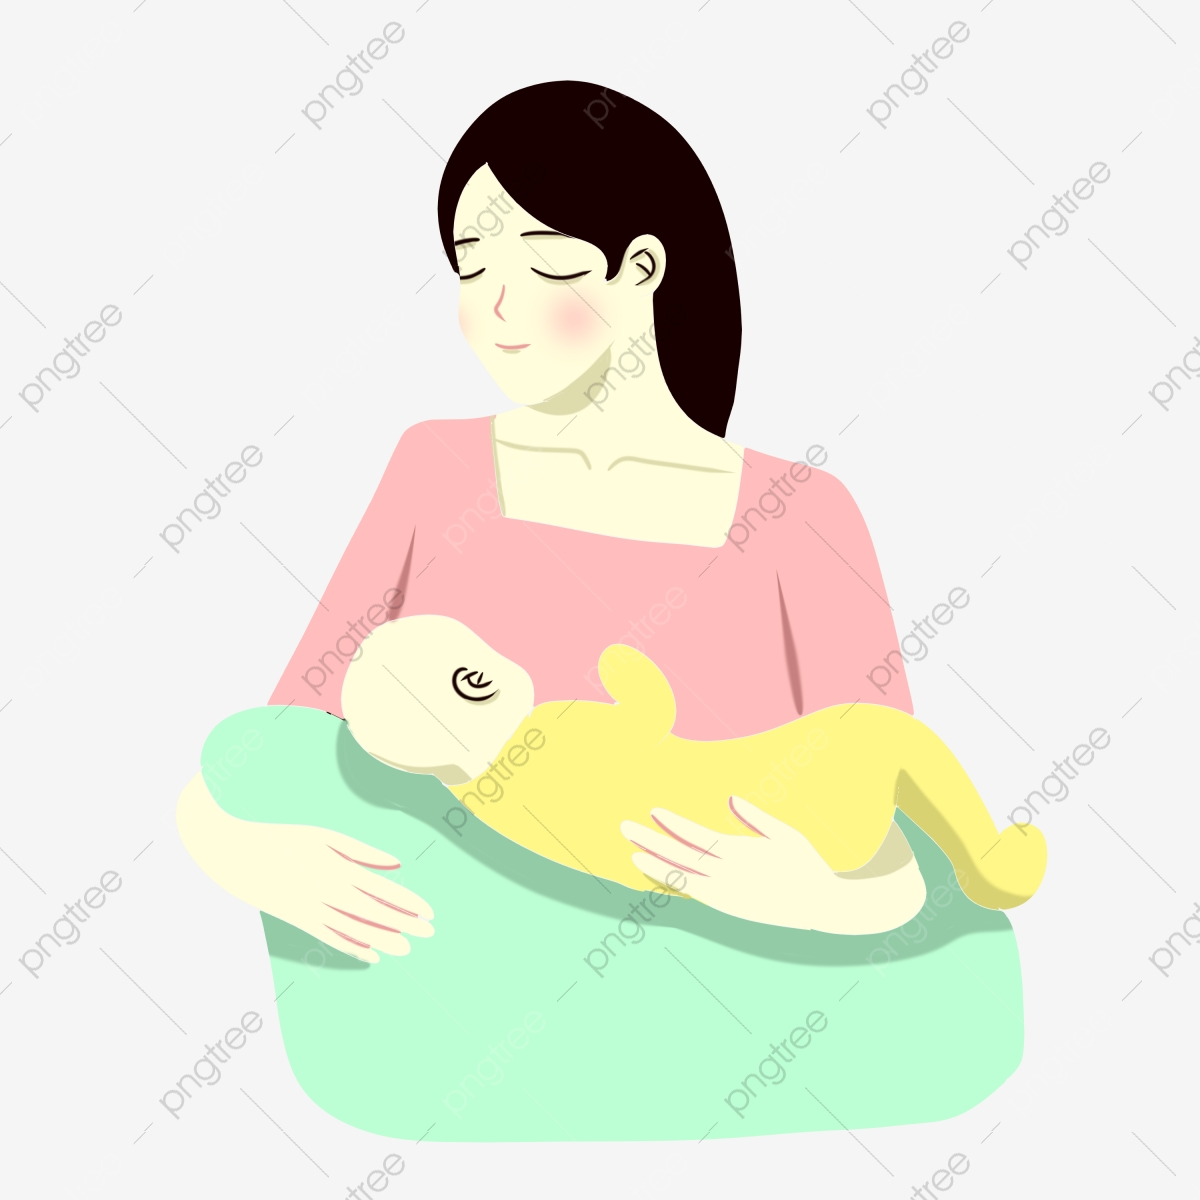 Hand Painted Cartoon Mother And Baby Breast Feeding Mother Baby Maternal Love Png Transparent Clipart Image And Psd File For Free Download